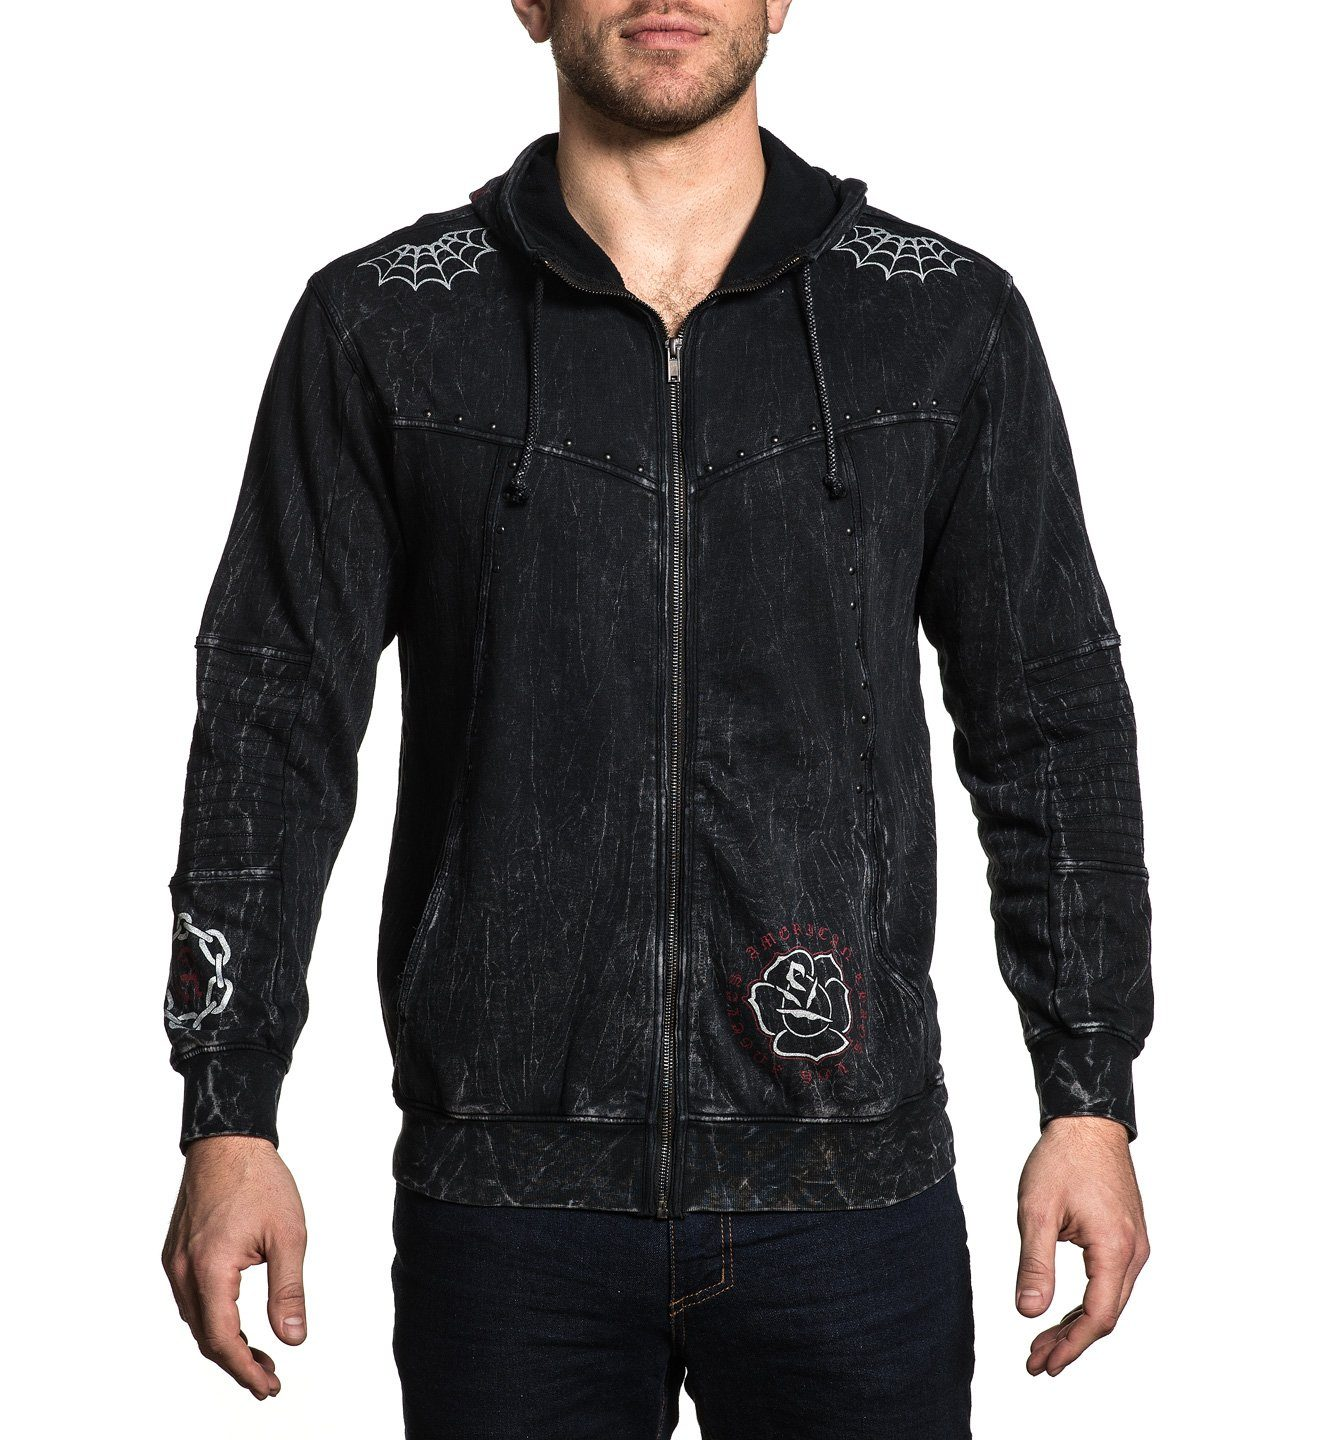 Snake Heart Zip Hood - Mens Hooded Sweatshirts - Affliction Clothing